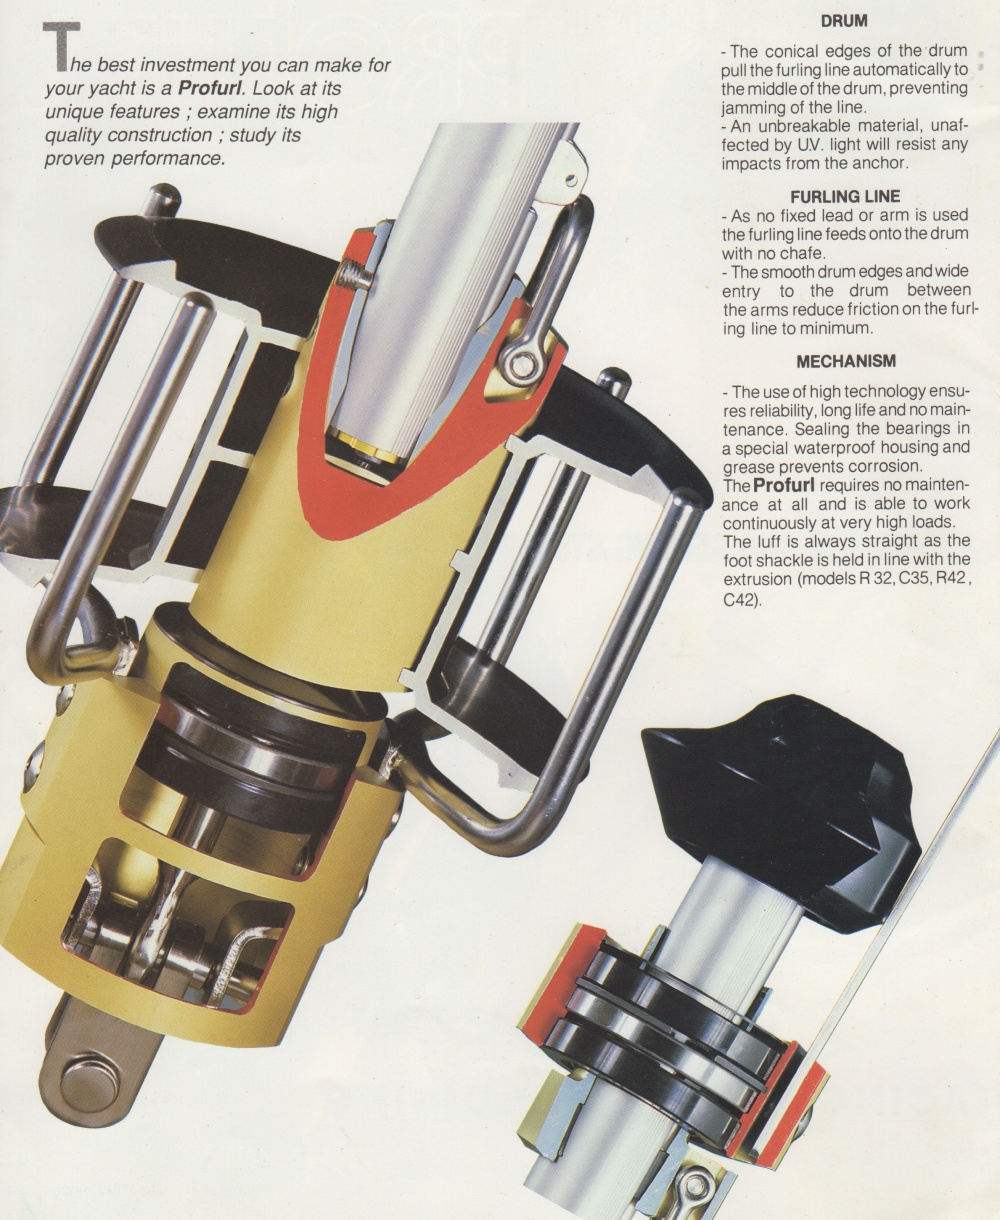 Click image for larger version  Name:Profurl Cutaway view.jpg Views:824 Size:419.9 KB ID:134334